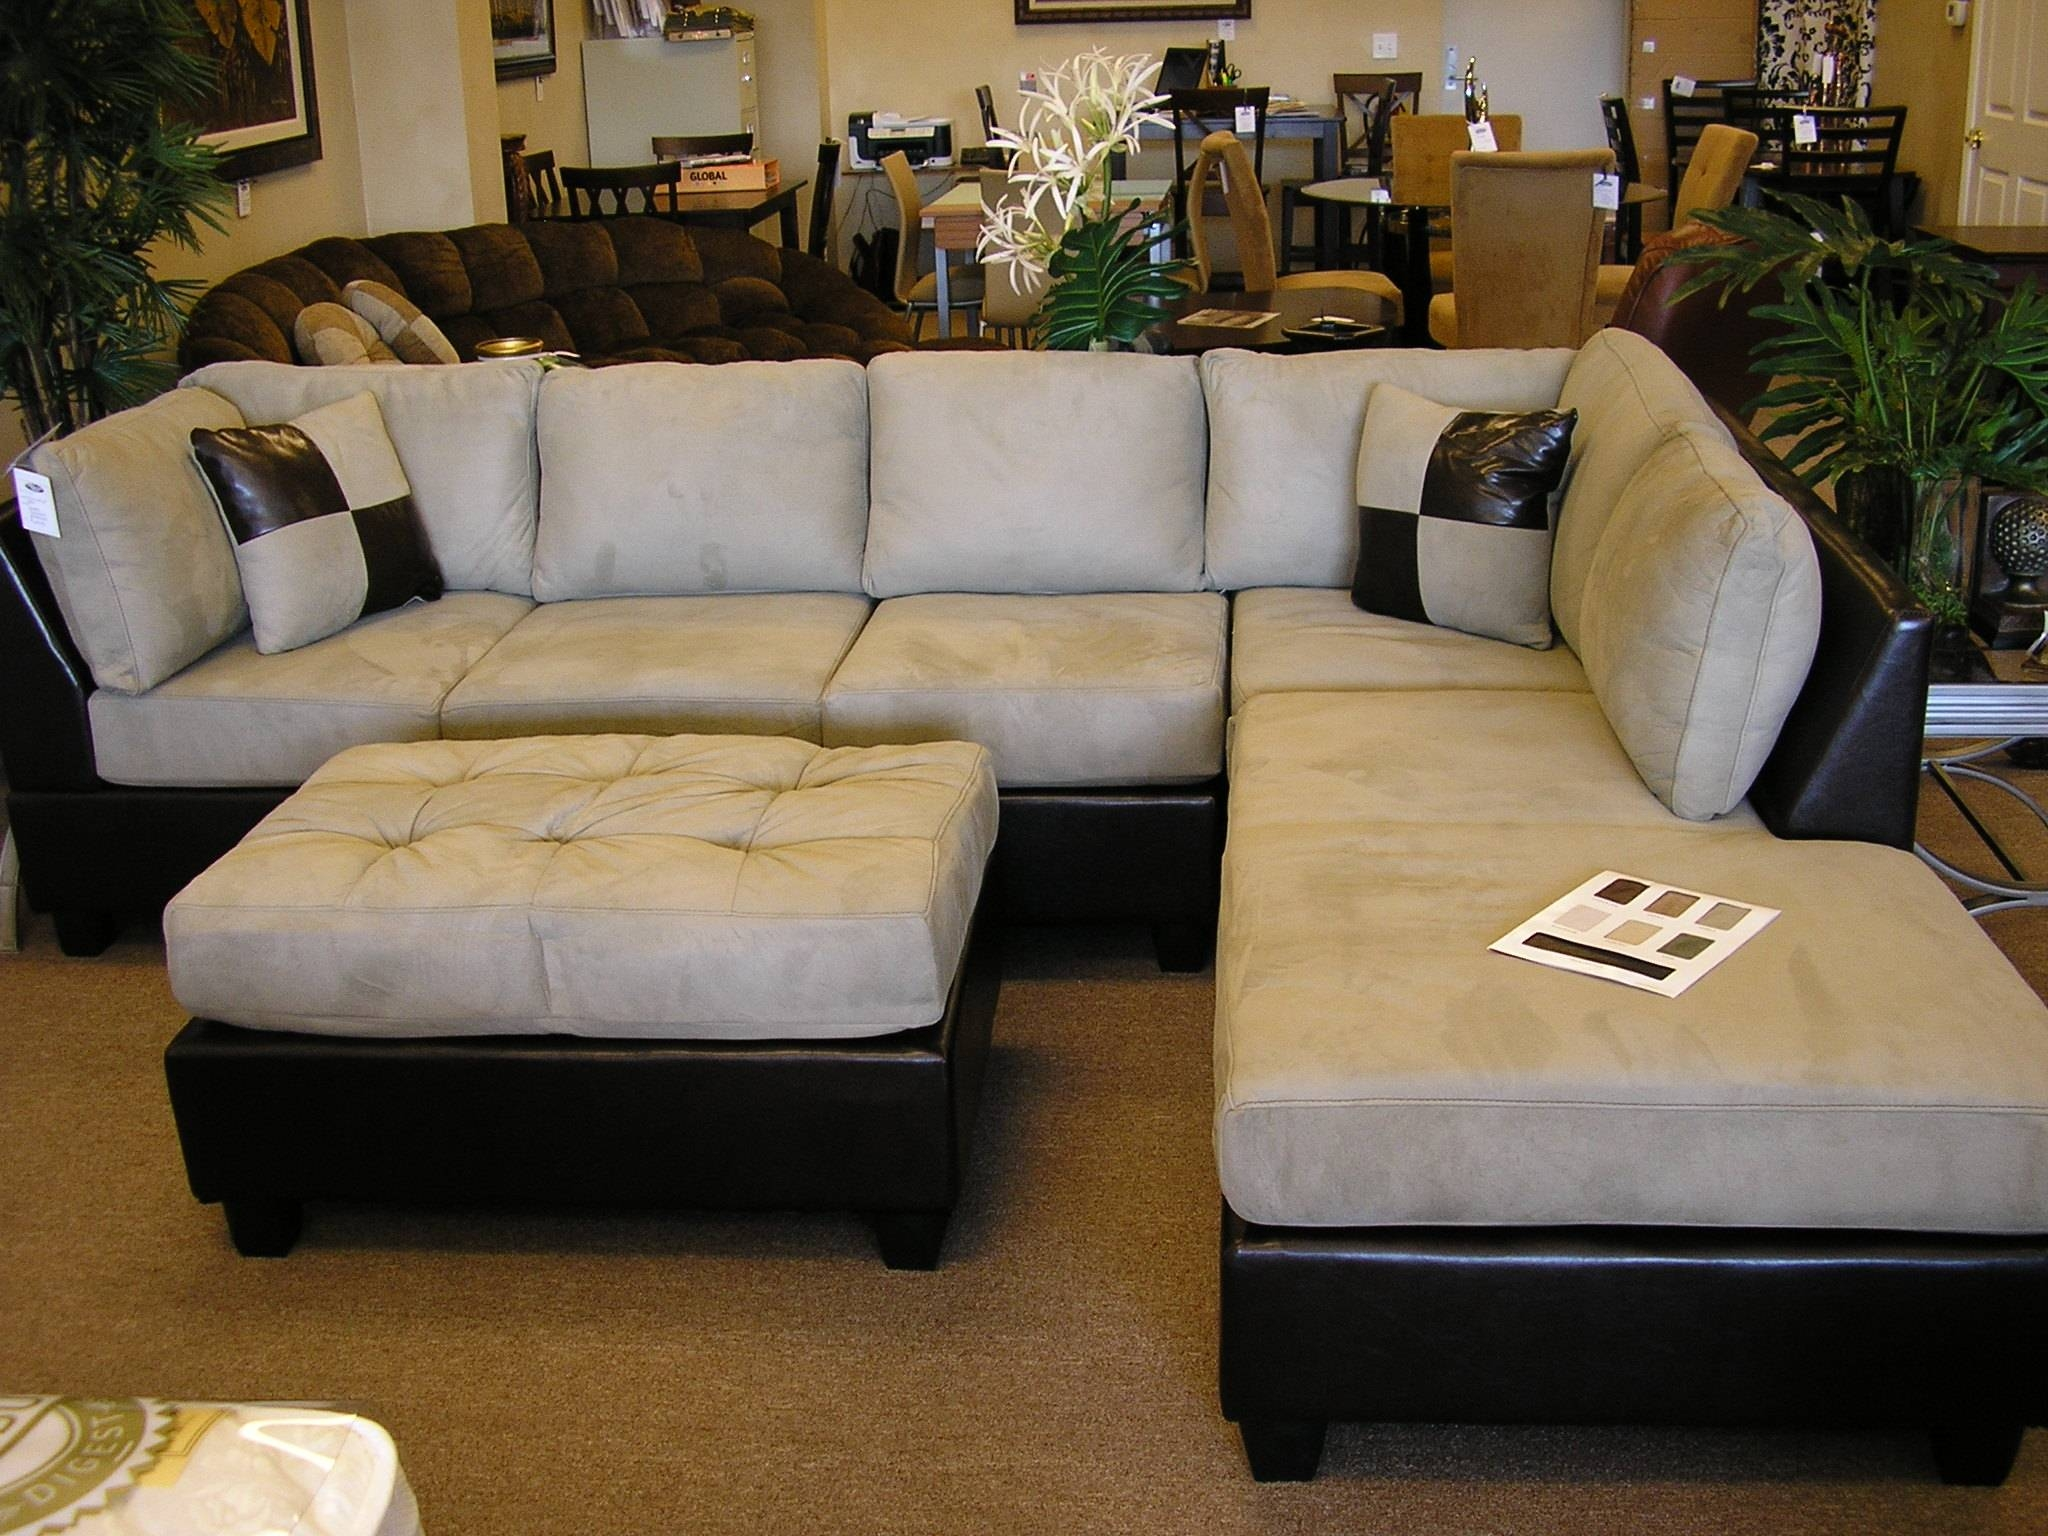 Extraordinary Fabric Sectional Sofas With Chaise 16 For Your with Sofas And Chaises Lounge Sets (Image 8 of 15)